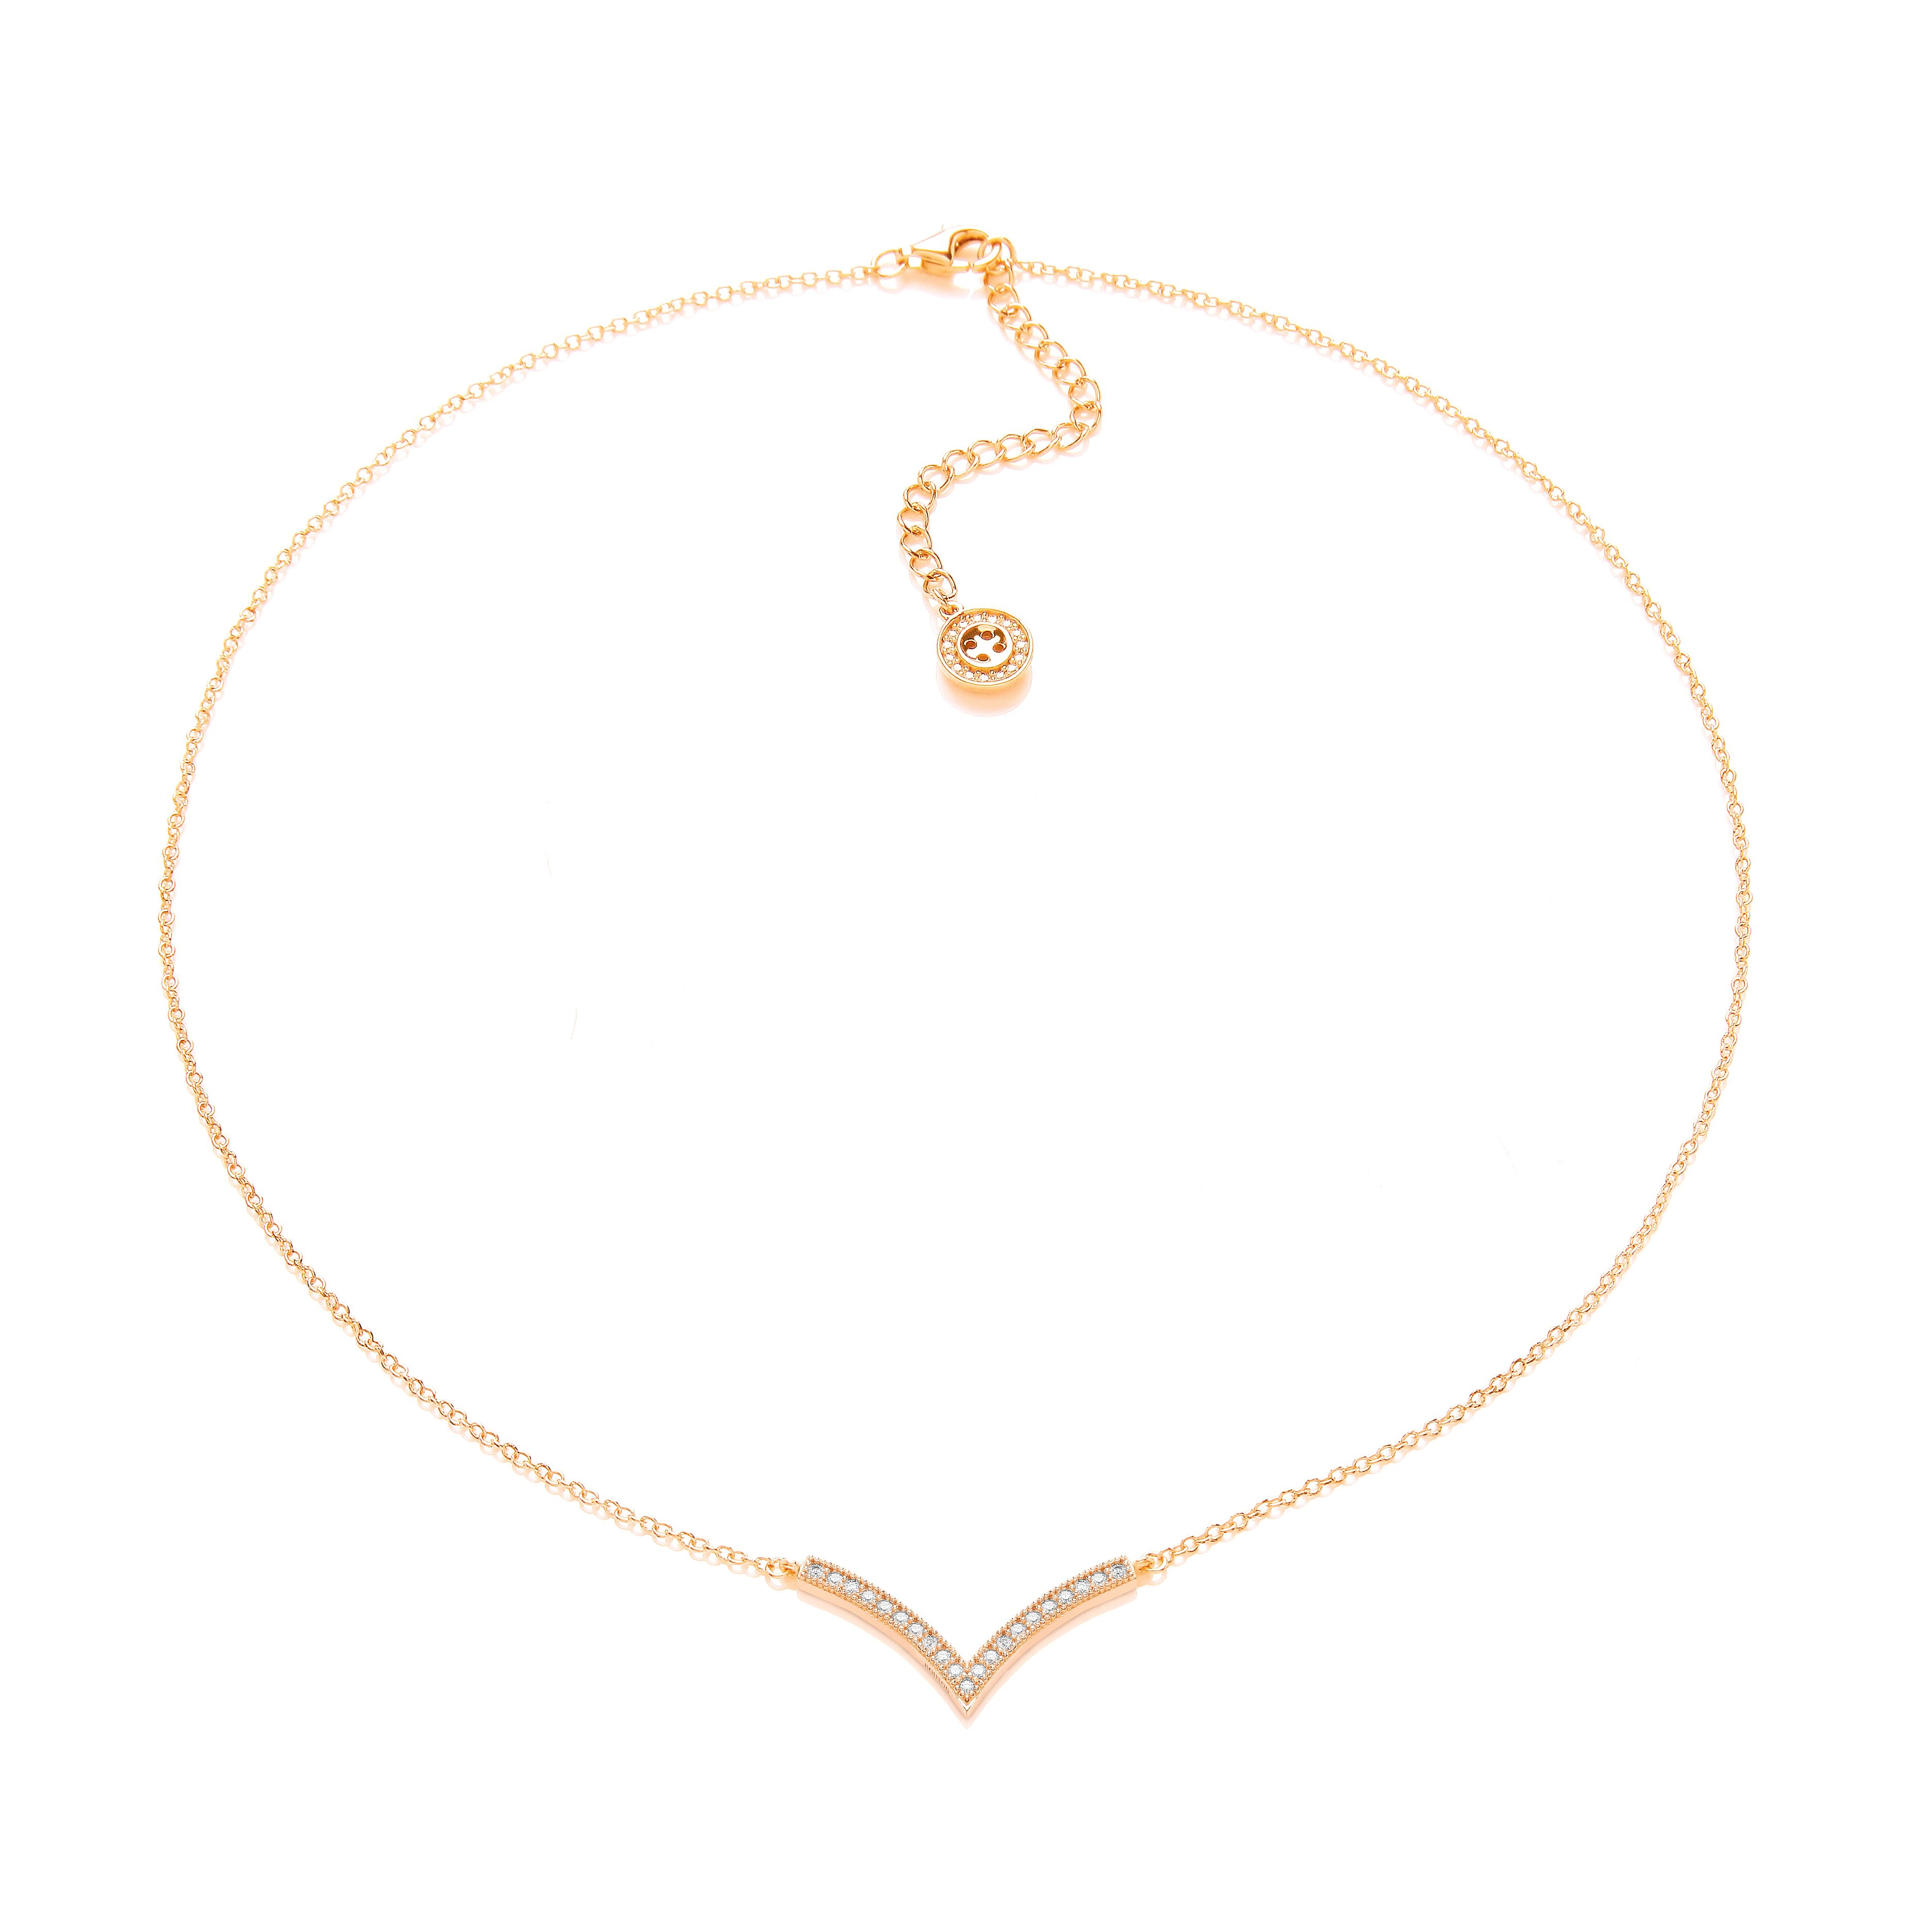 Gold wishbone necklace